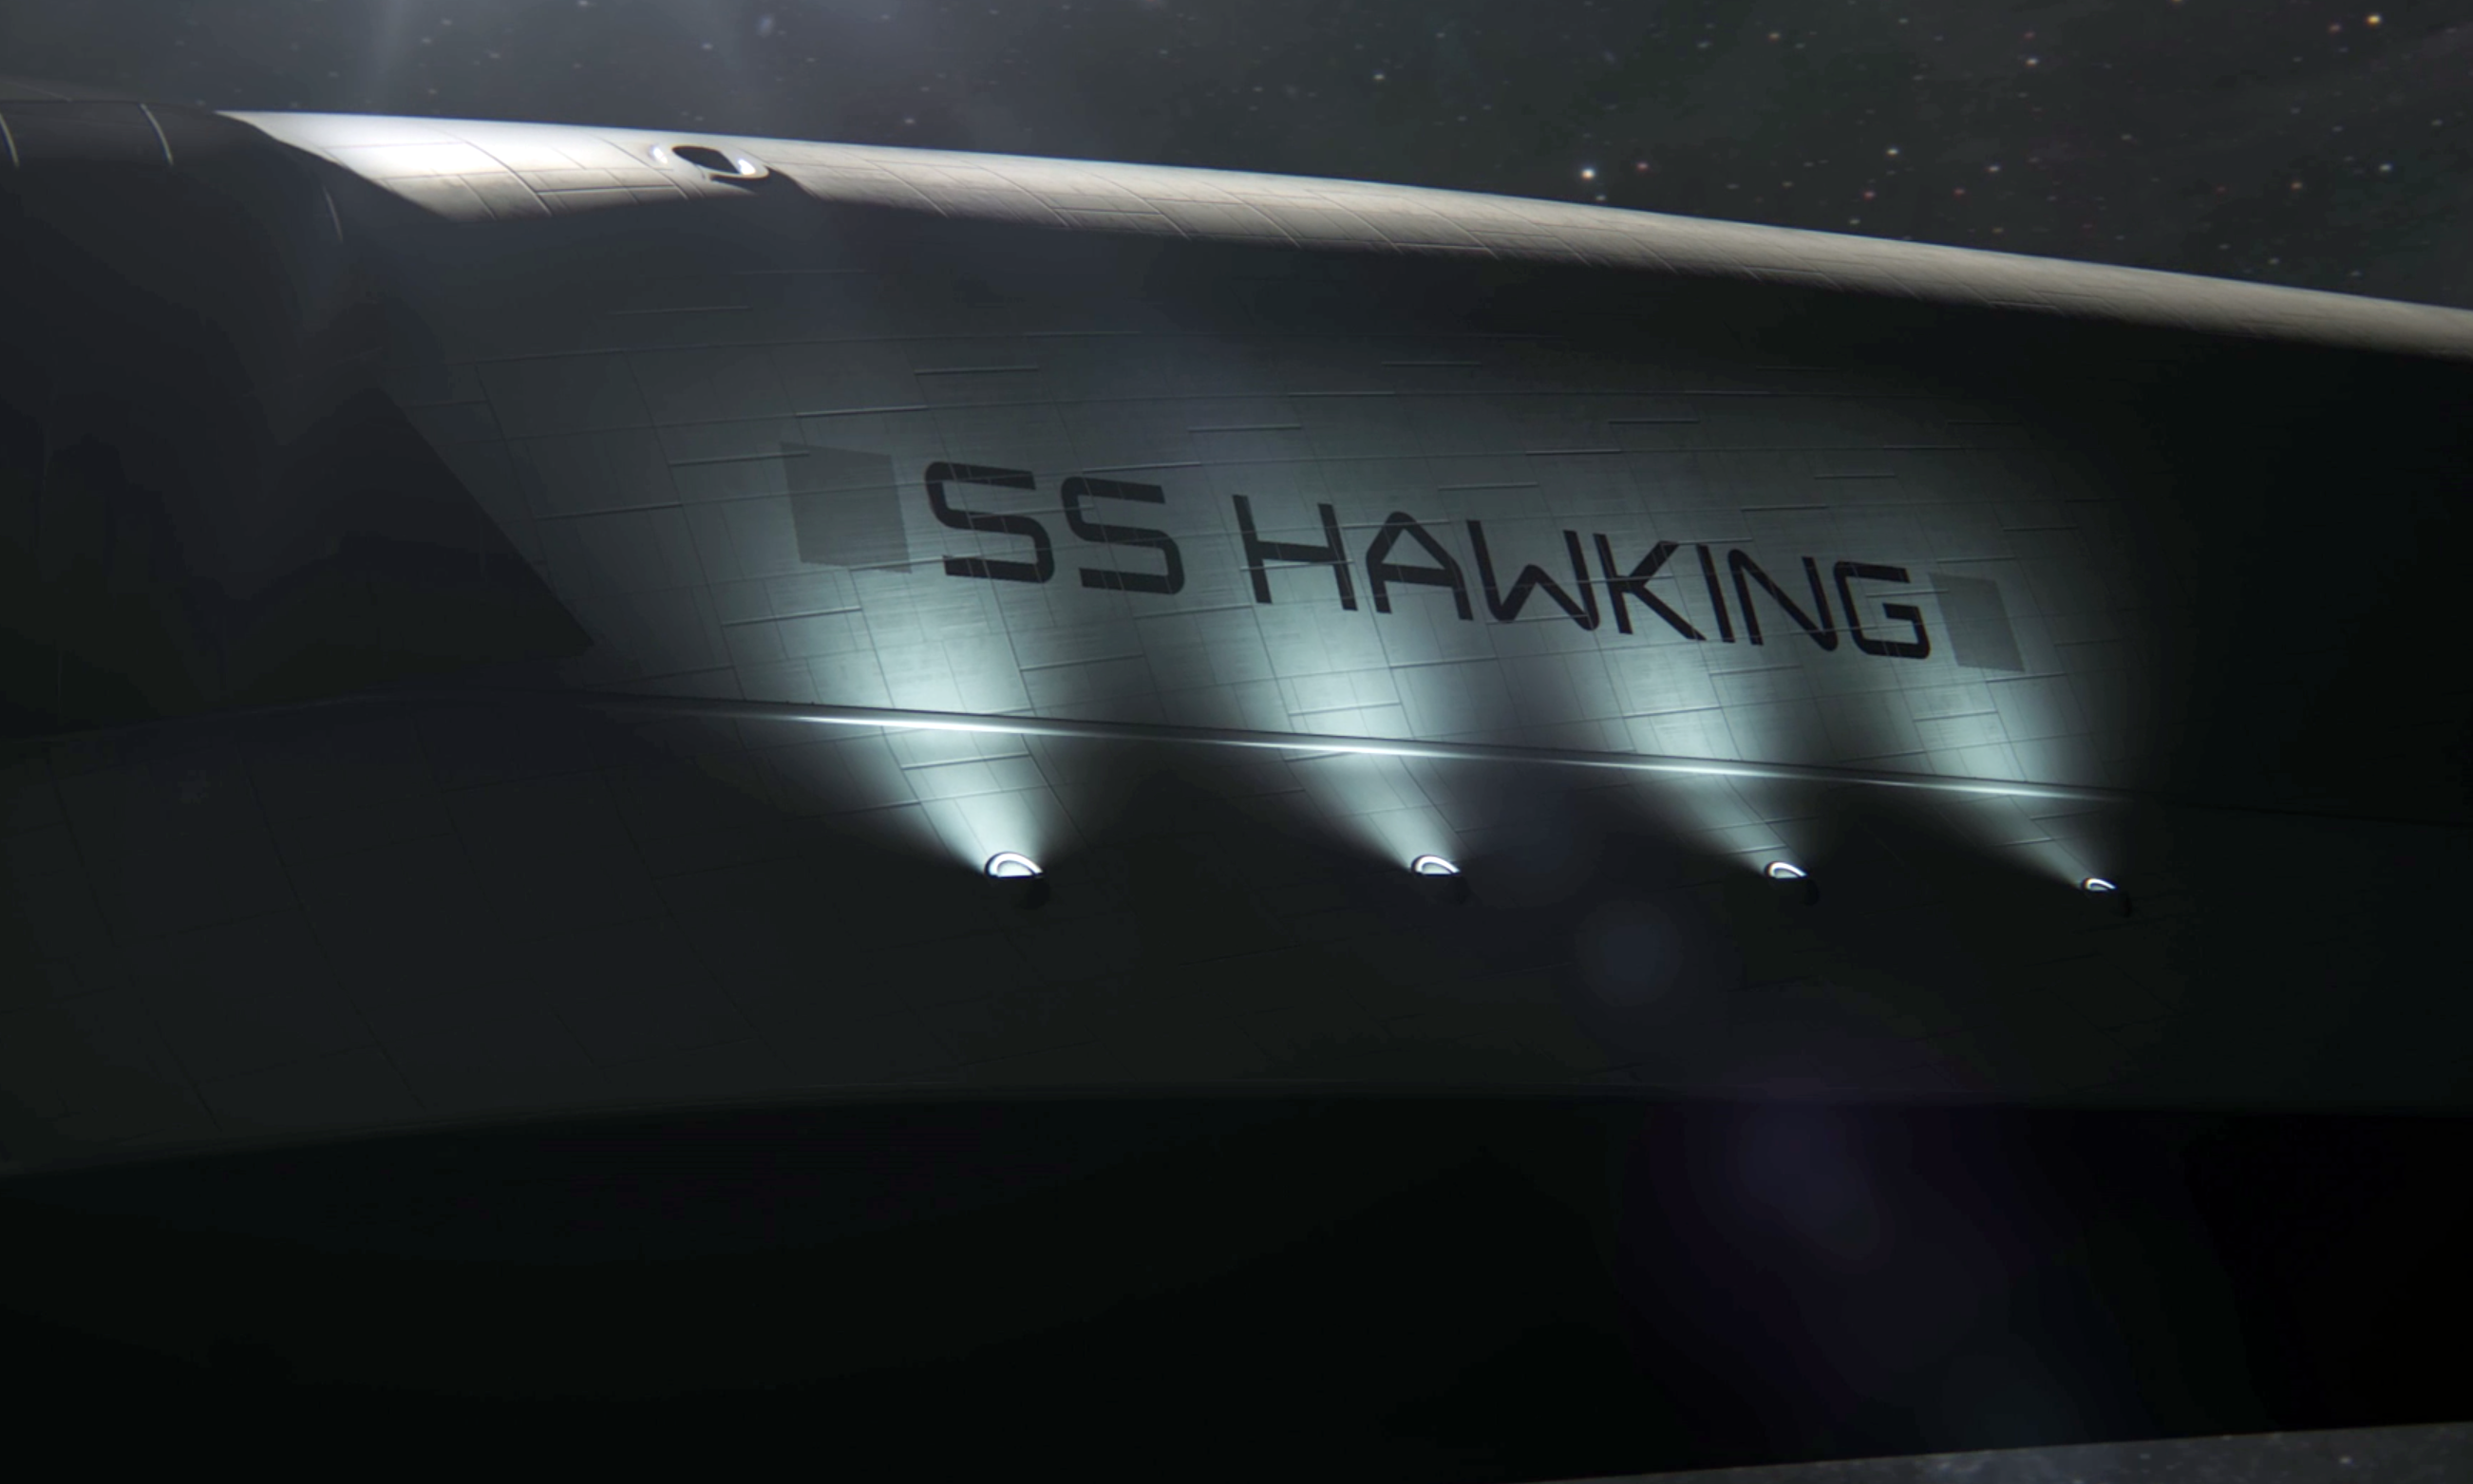 Hawking's CGI spaceship. Credit: Stephen Hawking's Favorite Places, screenshot